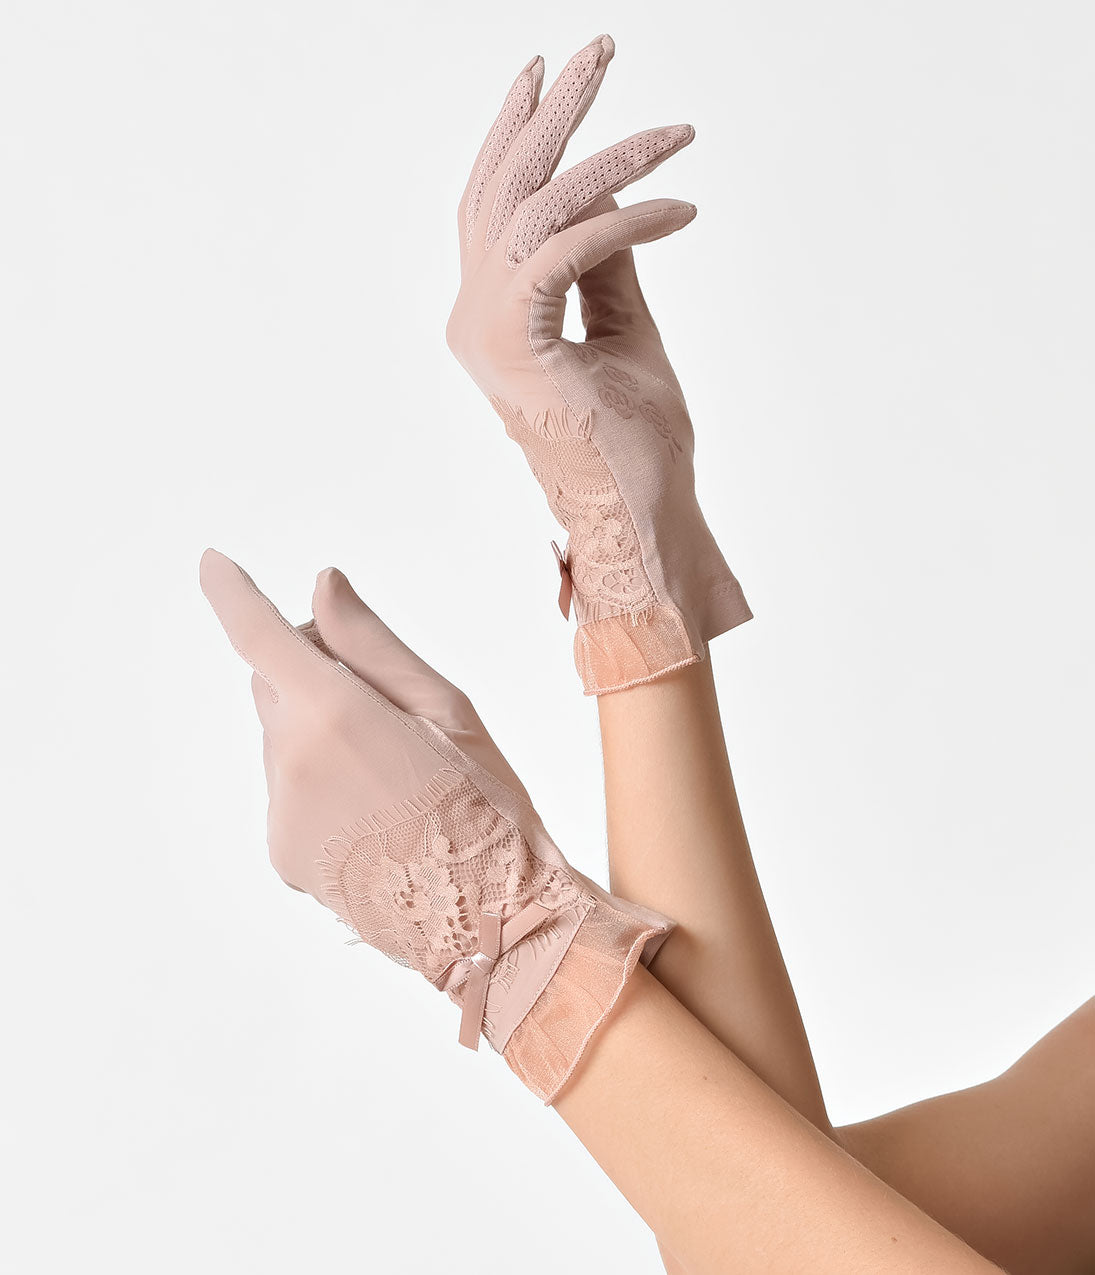 Vintage Style Gloves- Long, Wrist, Evening, Day, Leather, Lace Unique Vintage Dusty Pink Bow Lace  Frill Wrist Gloves $20.00 AT vintagedancer.com